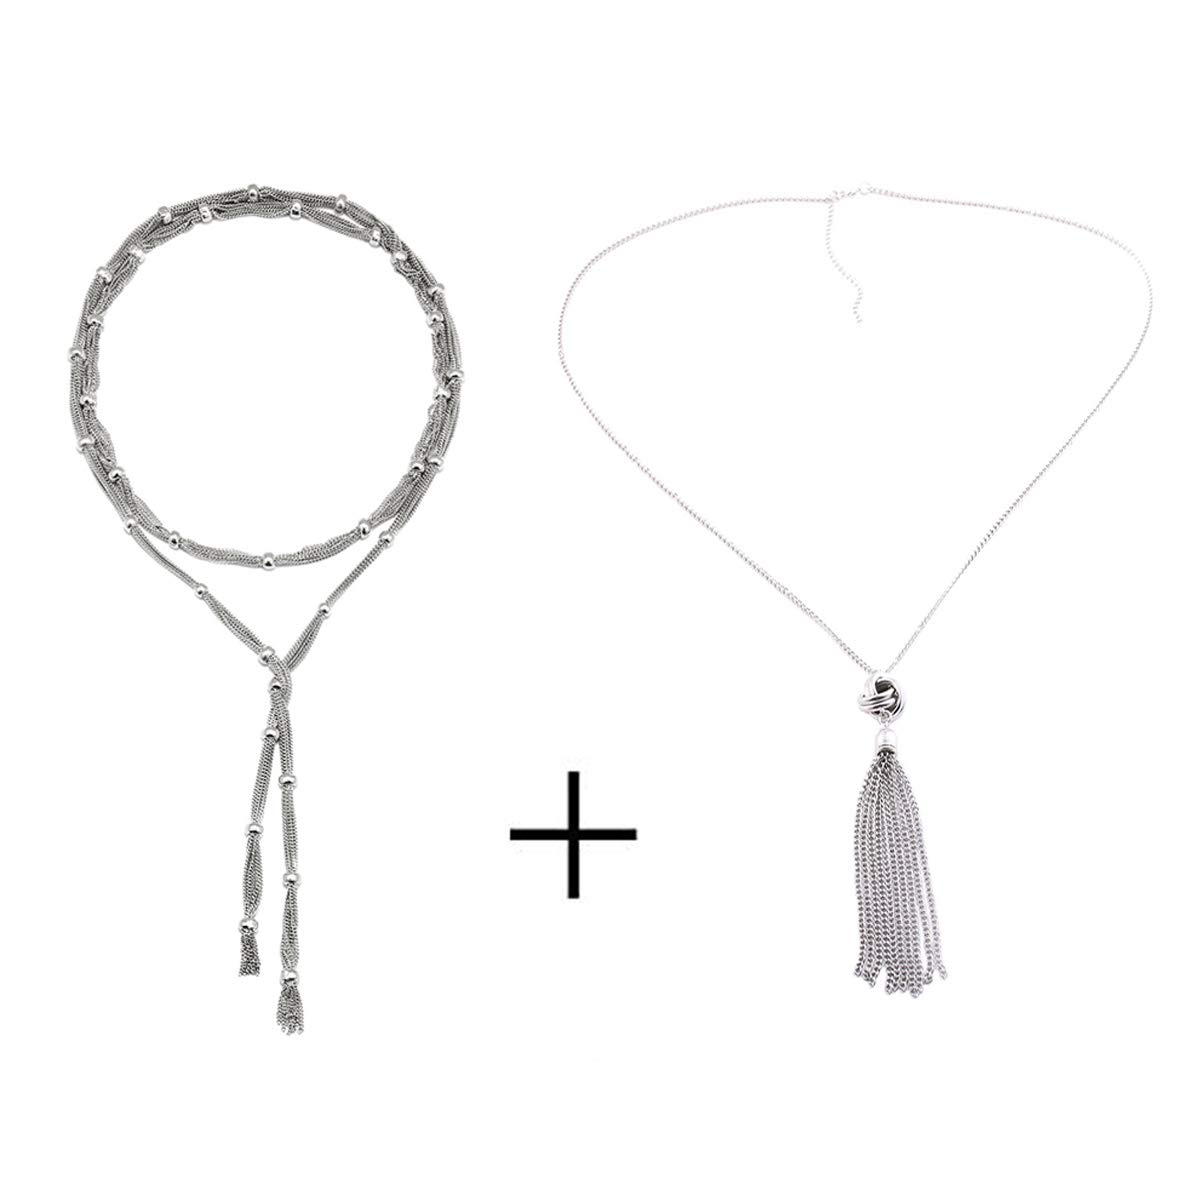 Long Chain Tassel Necklace Silver Tone Lovely Knot Tassel Pendant Pendant Necklace Knot Sweater Y Necklace for Women